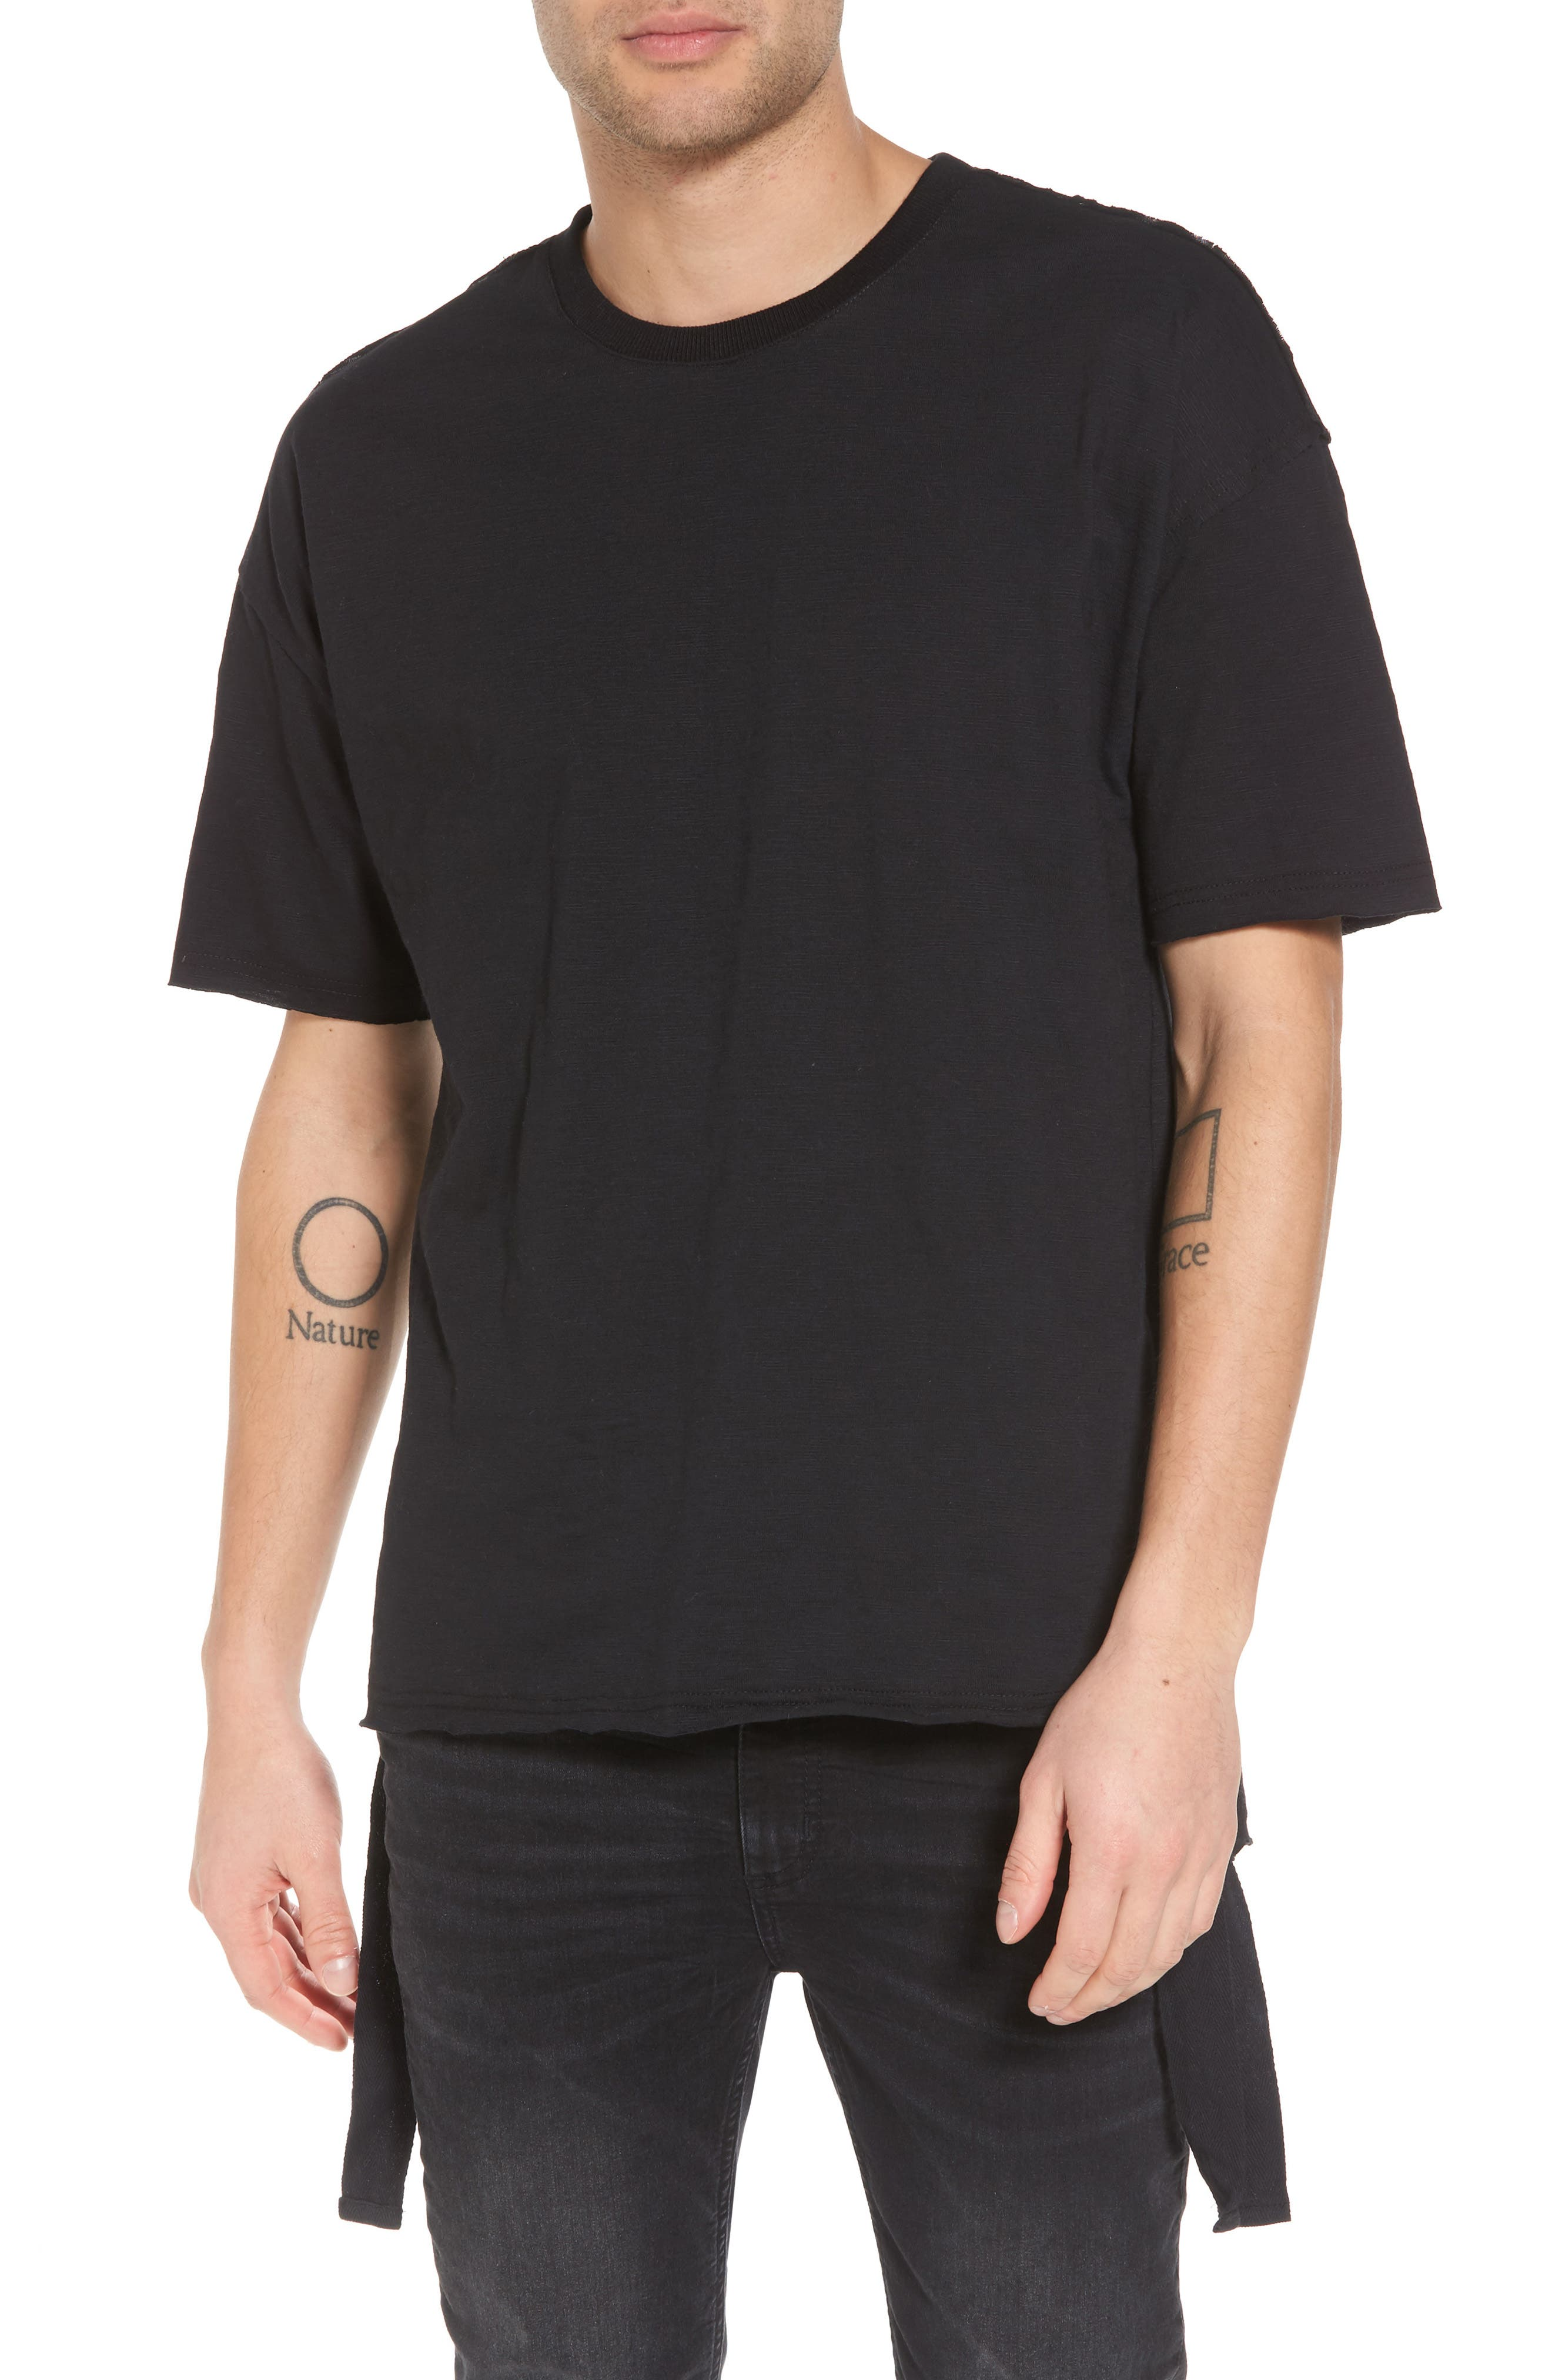 The Rail Raw Edge Strapped T-Shirt